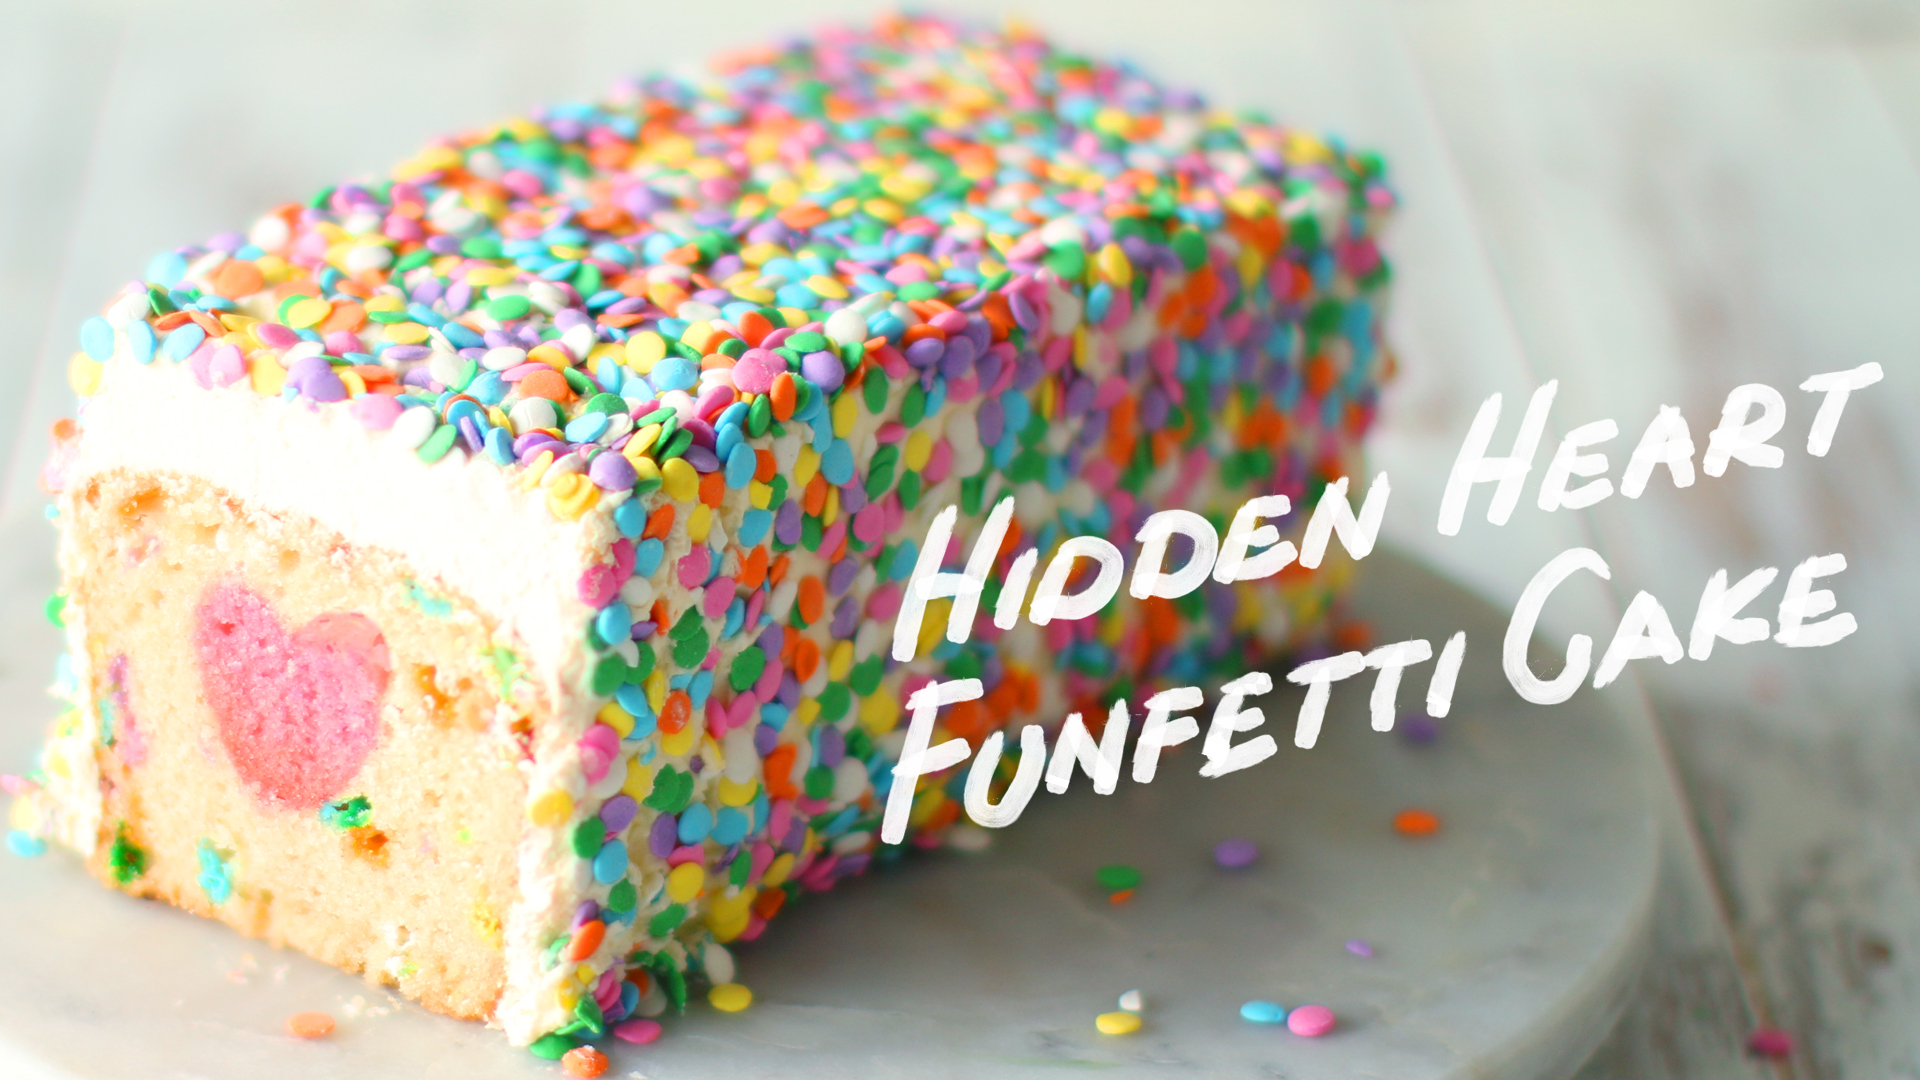 hidden heart funfetti cake ~ the scran line | tastemade